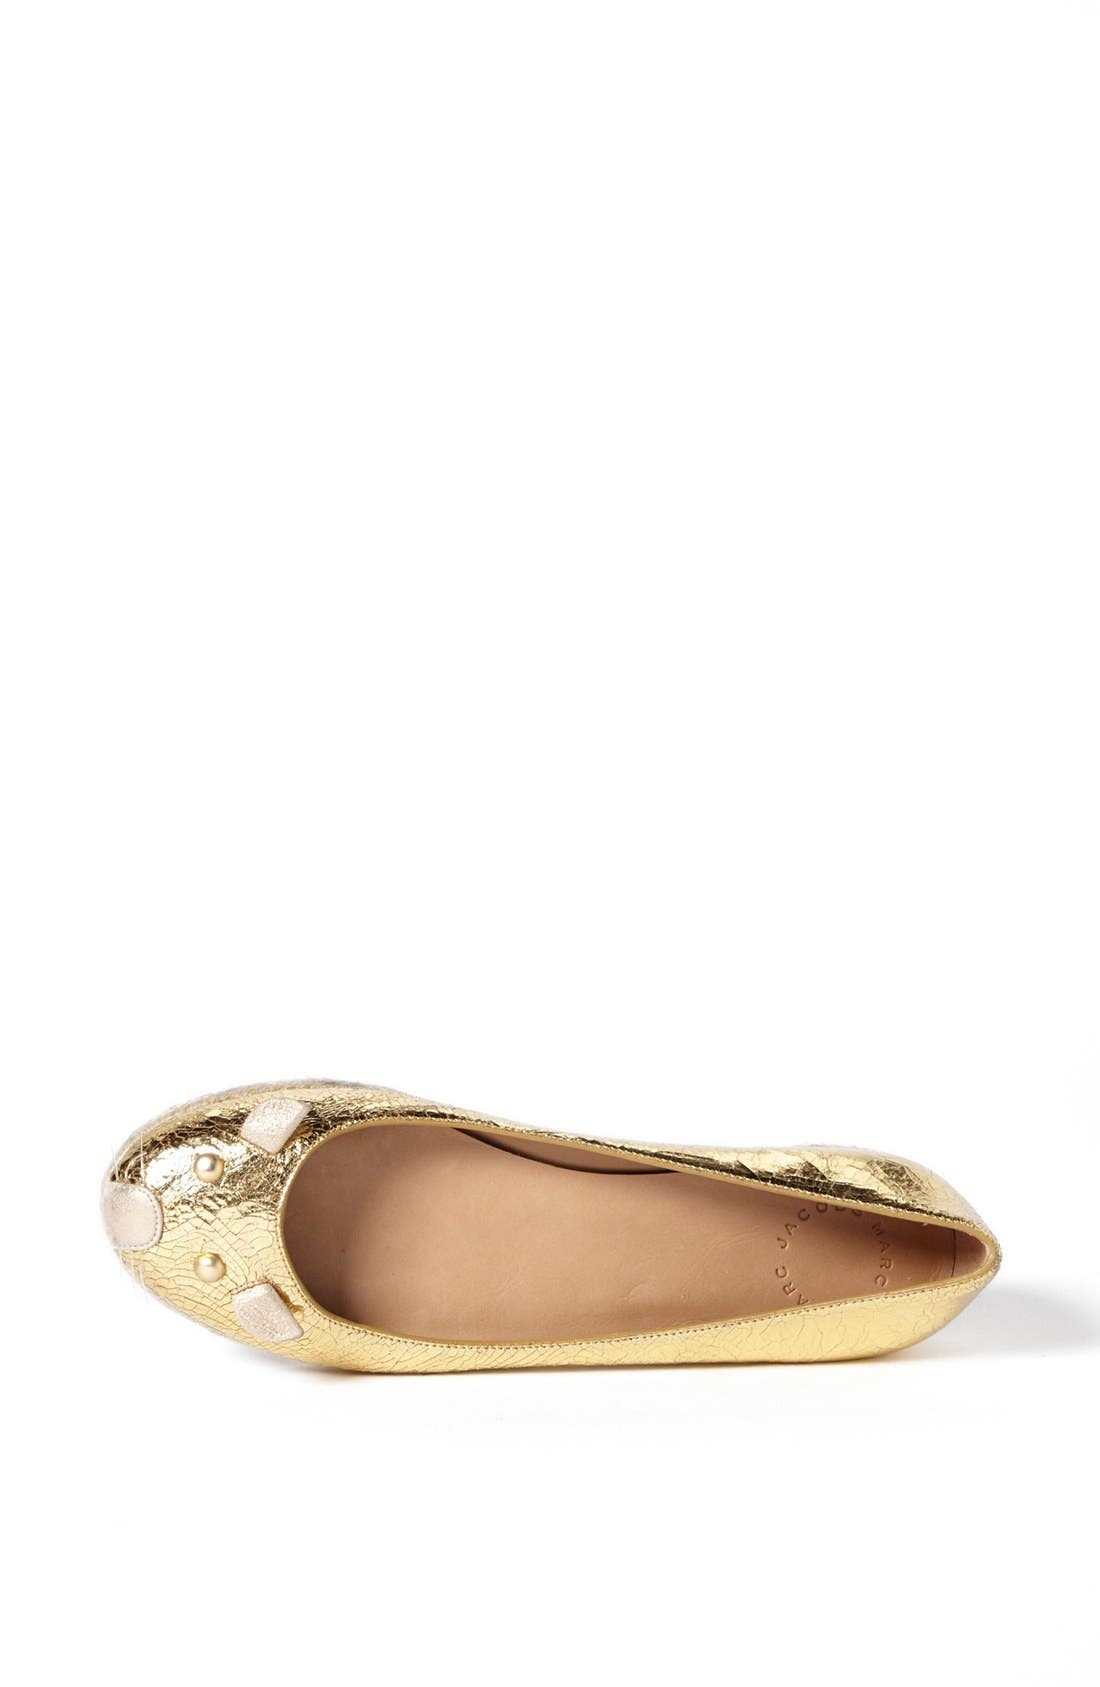 Alternate Image 3  - MARC BY MARC JACOBS 'Mouse' Metallic Calfskin Leather Espadrille Flat